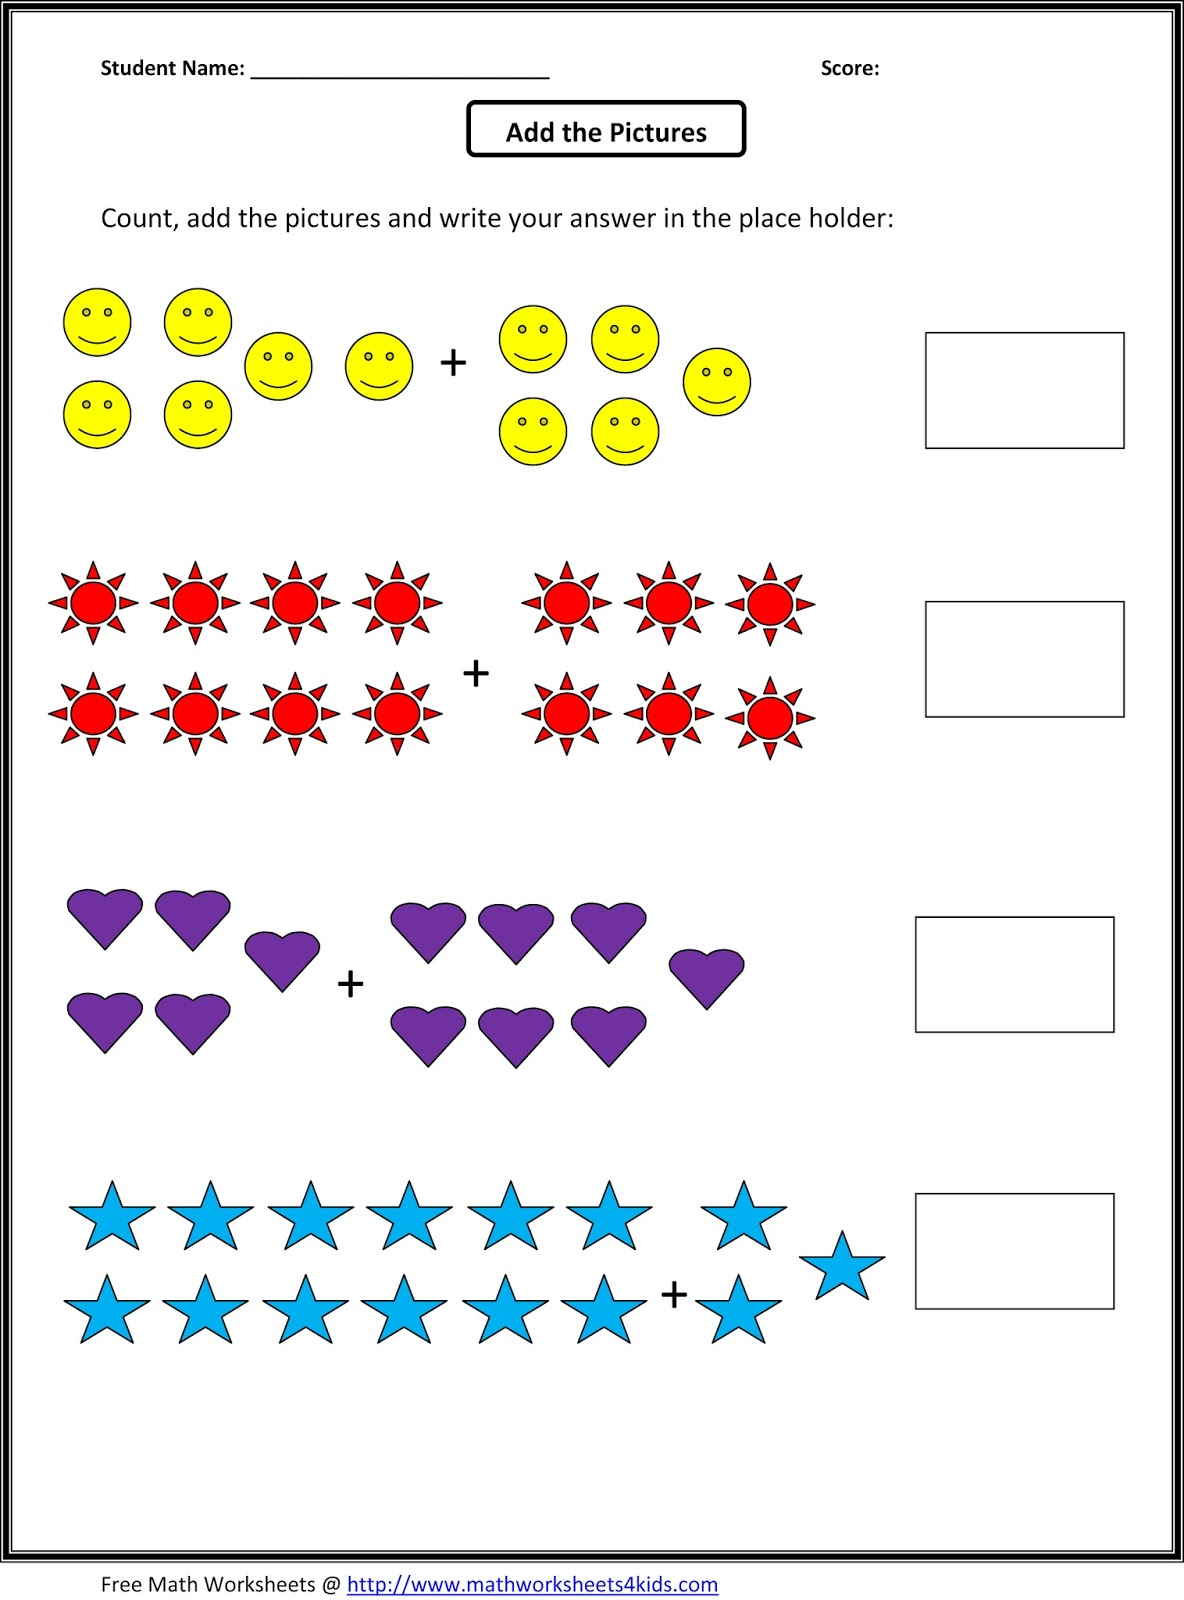 Printables Special Education Math Worksheets functional math worksheets versaldobip special education bloggakuten